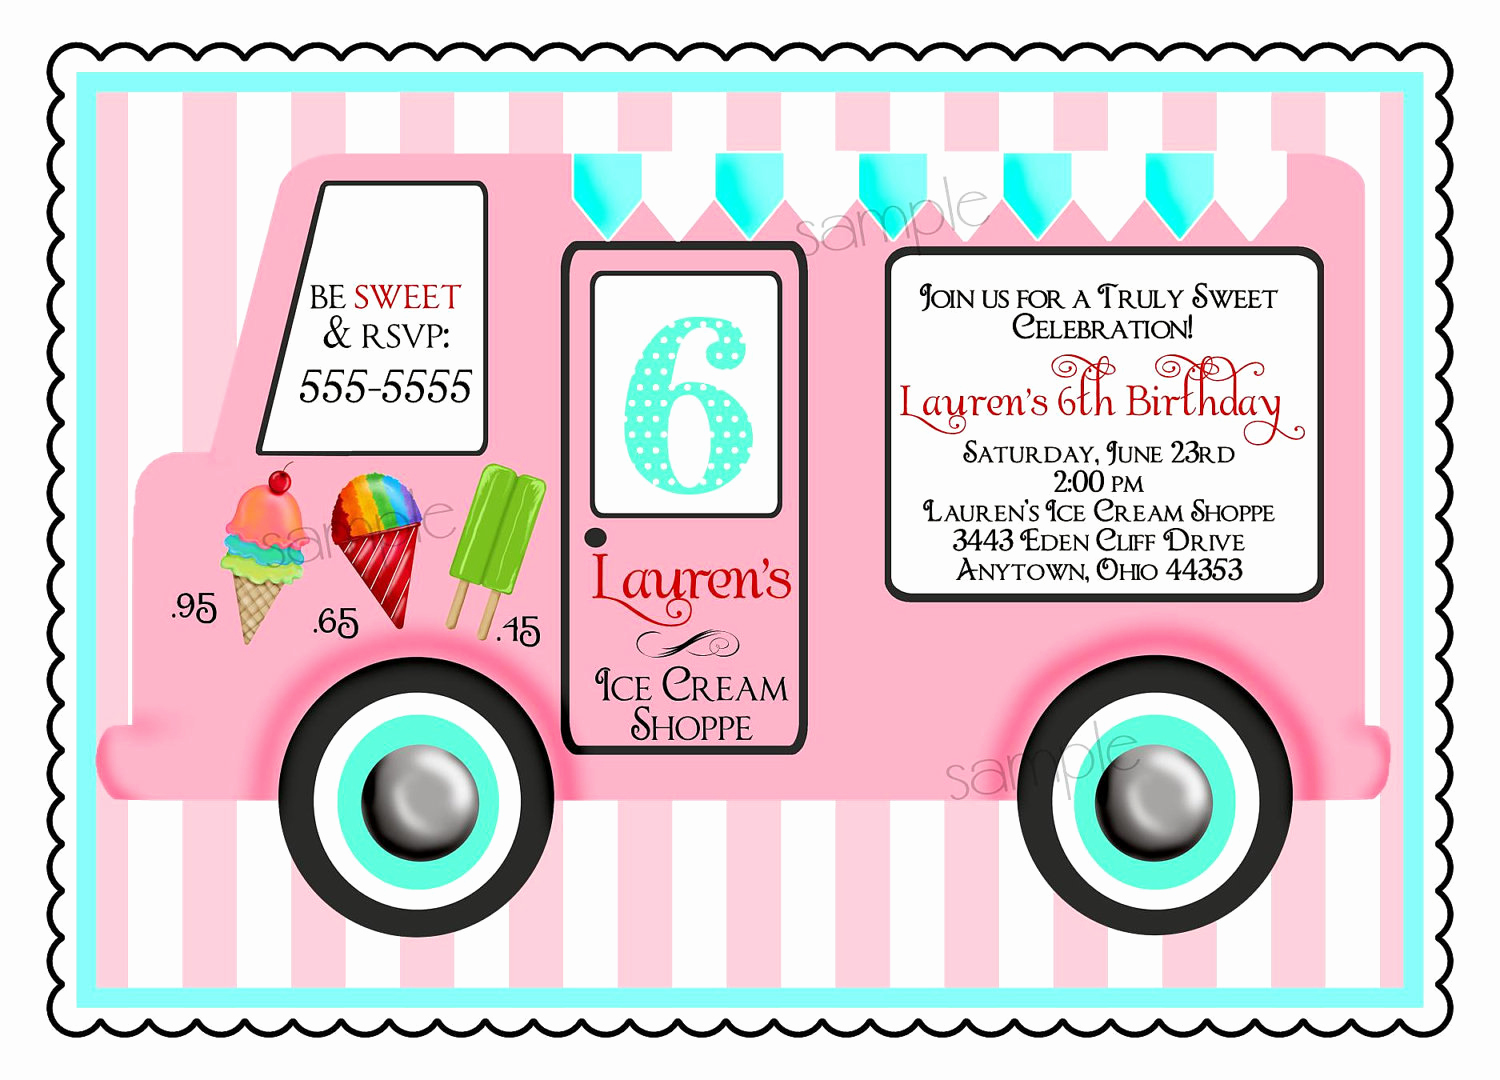 Ice Cream Party Invitation Inspirational Ice Cream Birthday Party Invitations Vintage Ice Cream Truck